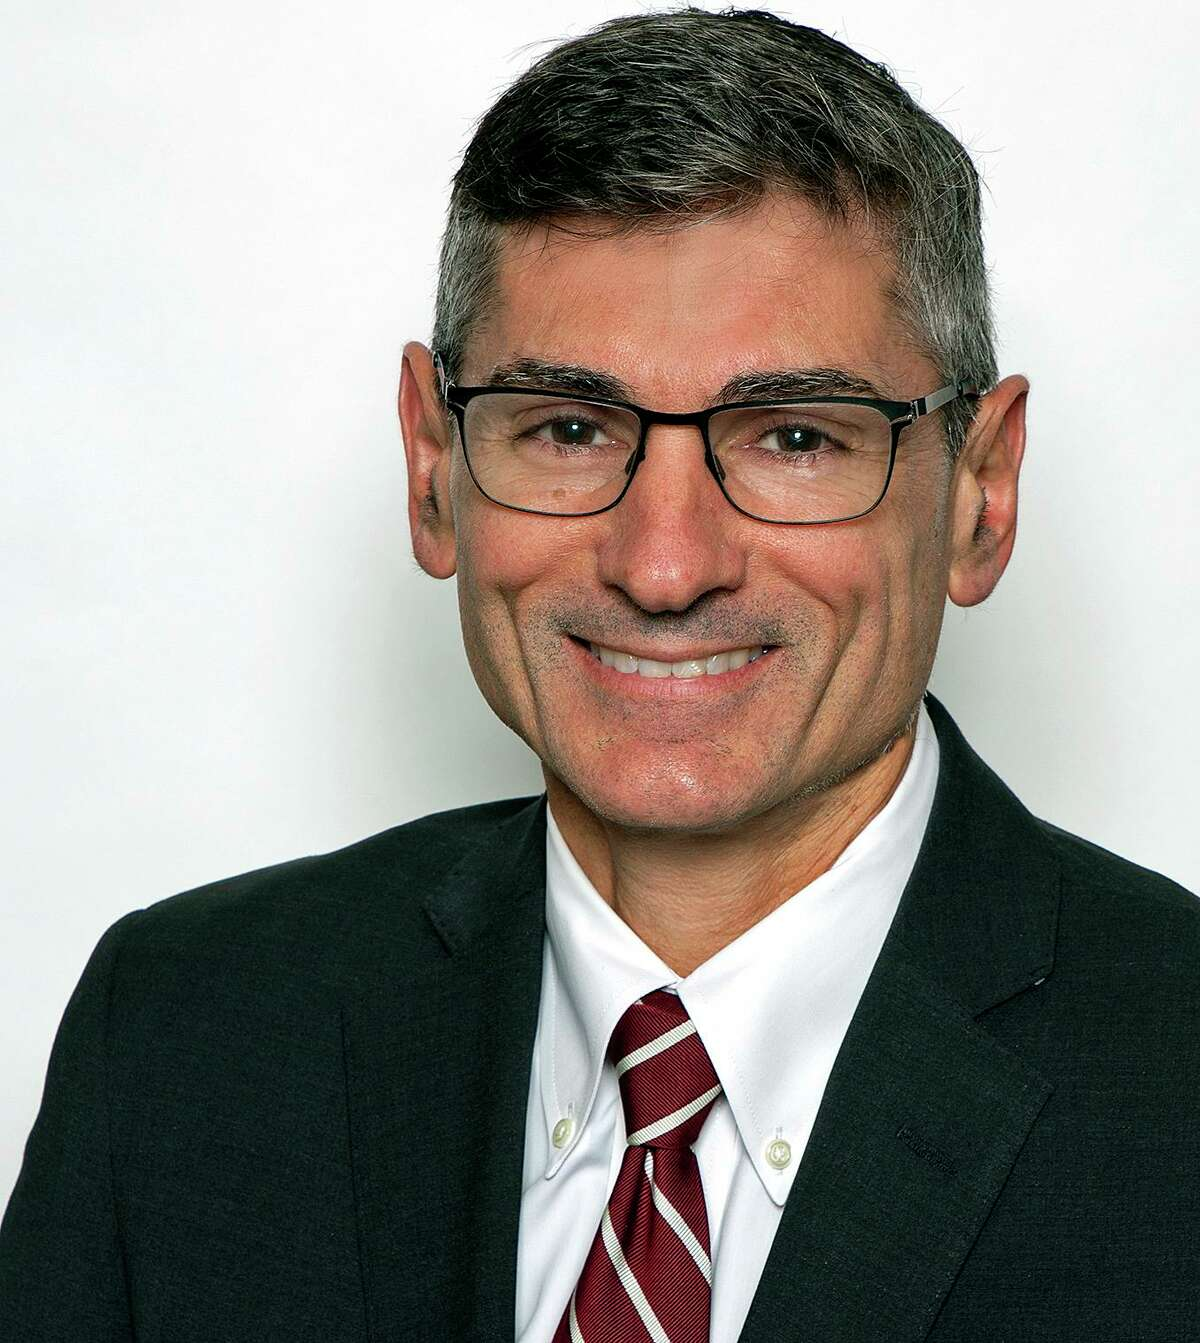 Dr. Jeffrey Nicastro, network chair of surgery for Nuvance Health